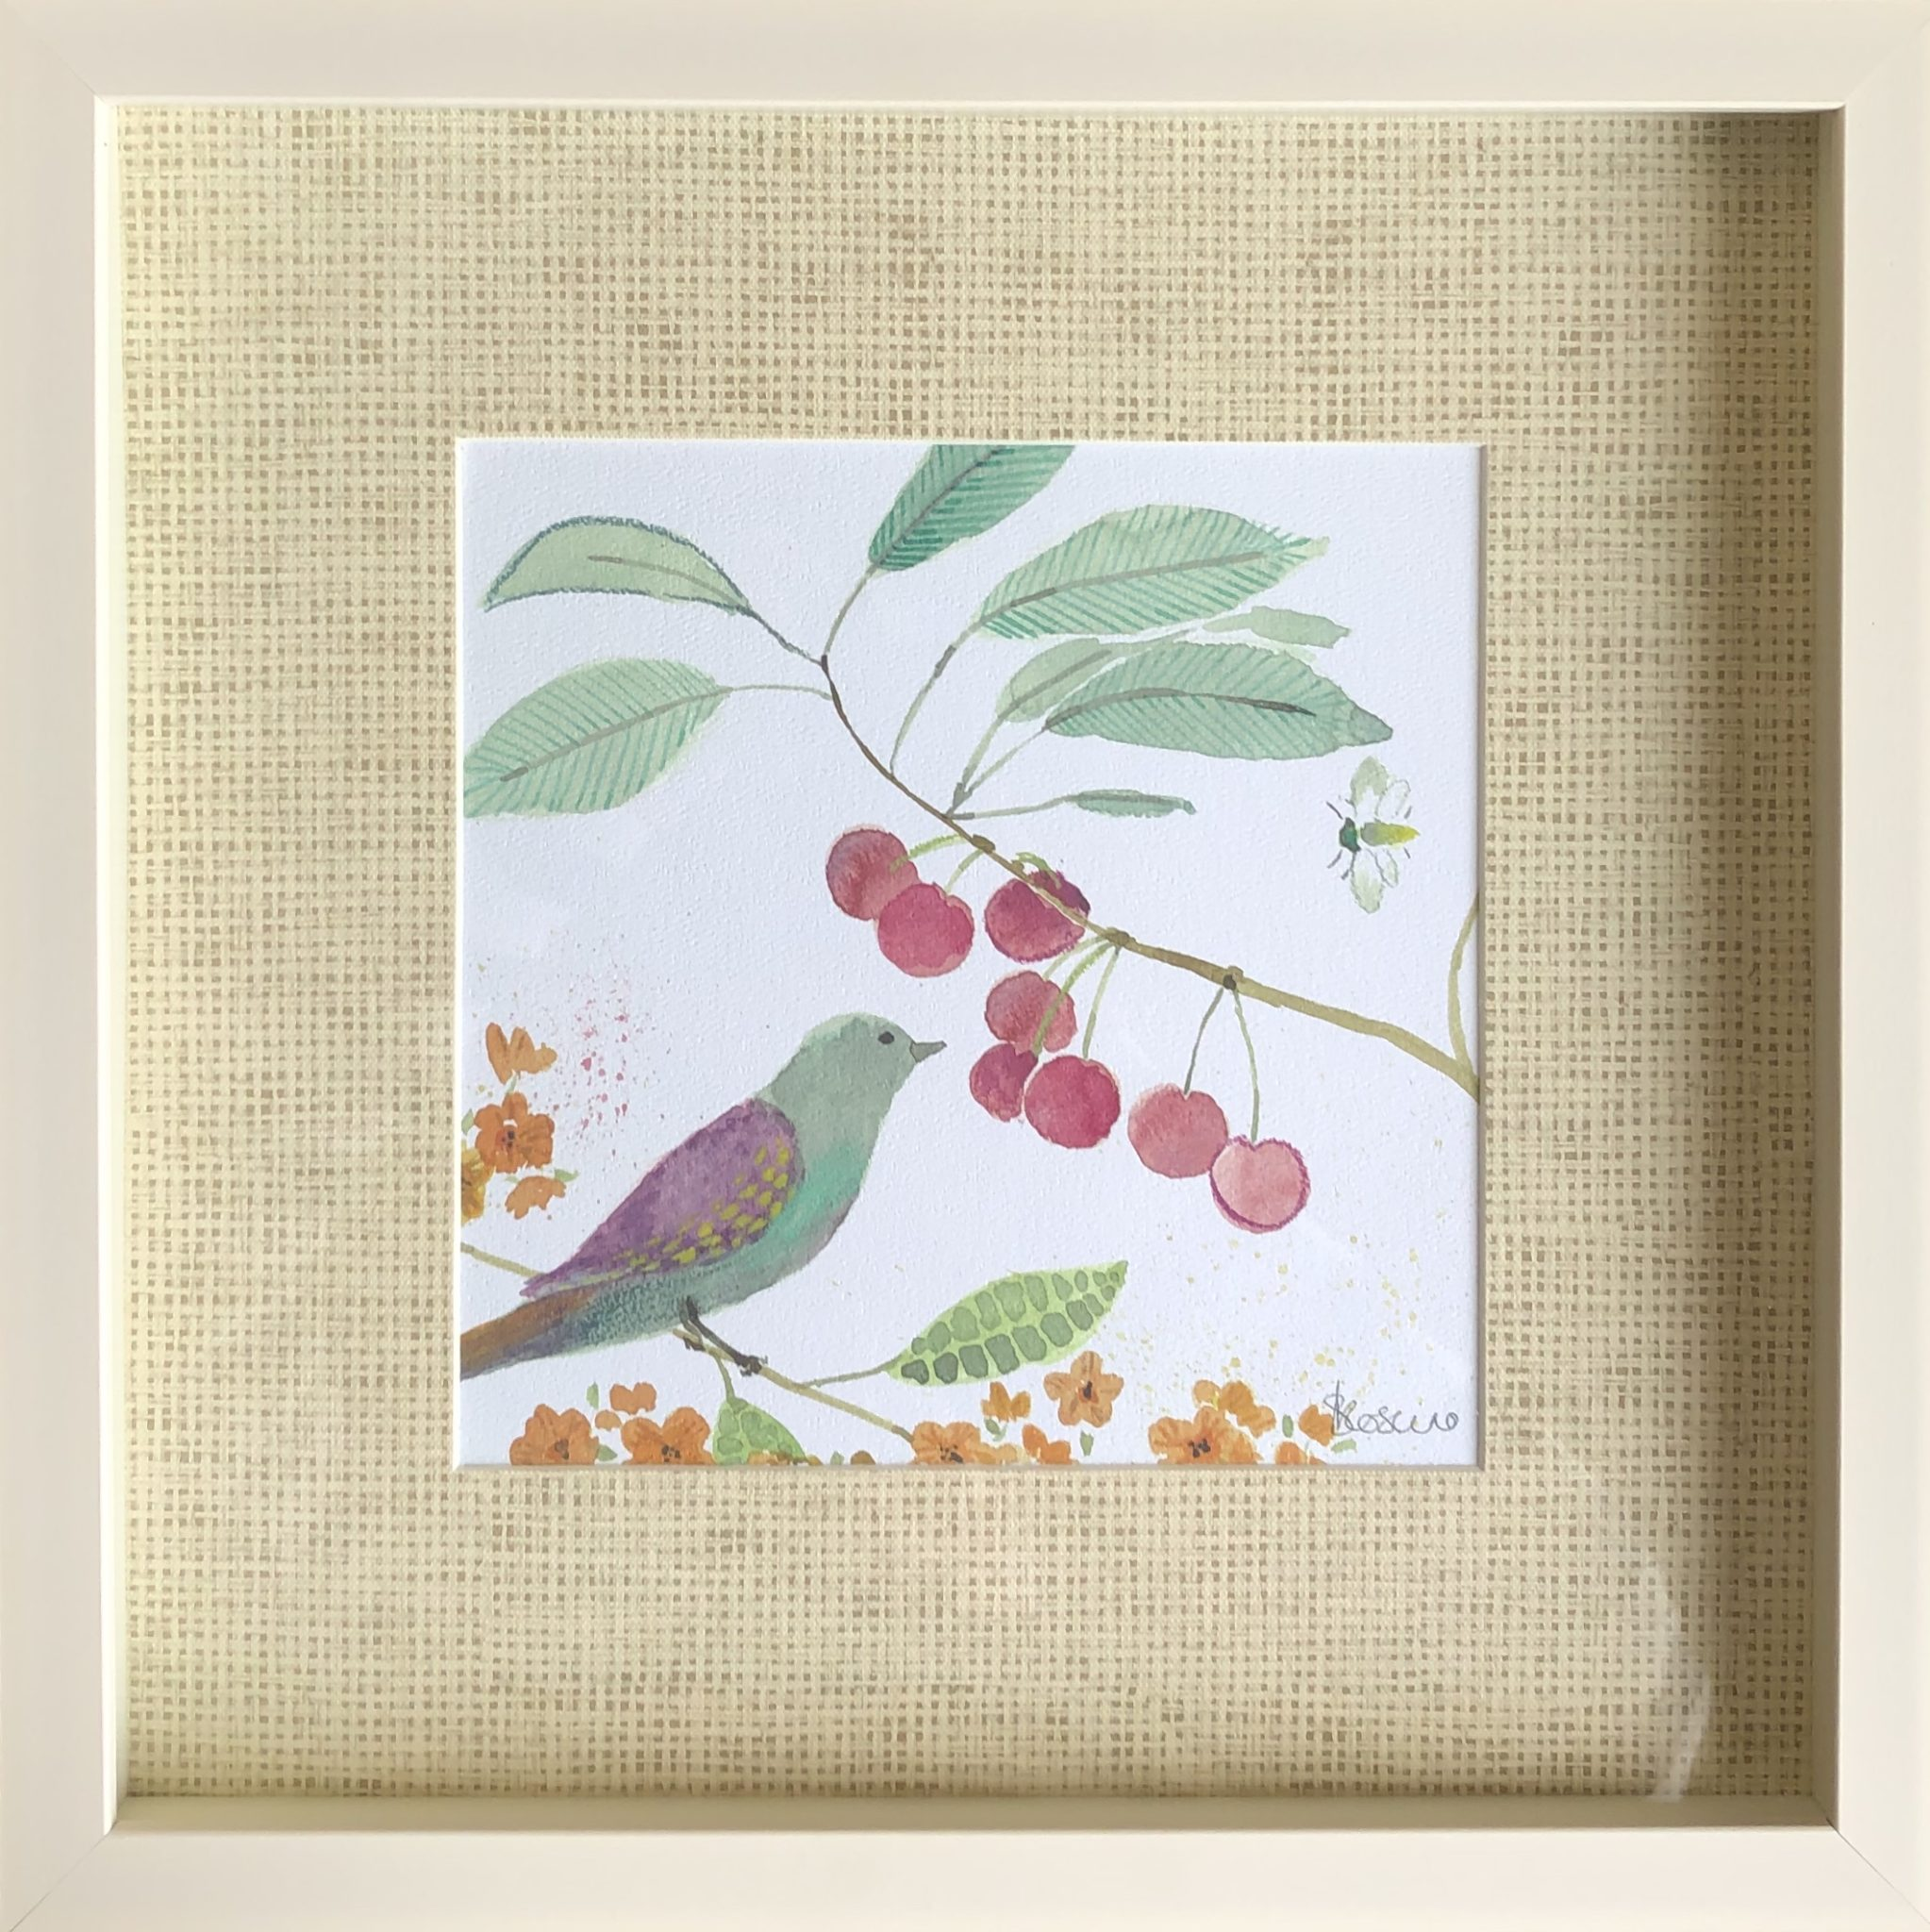 AF3505 Garden song by Sabrina roscino framed art of bird with berries